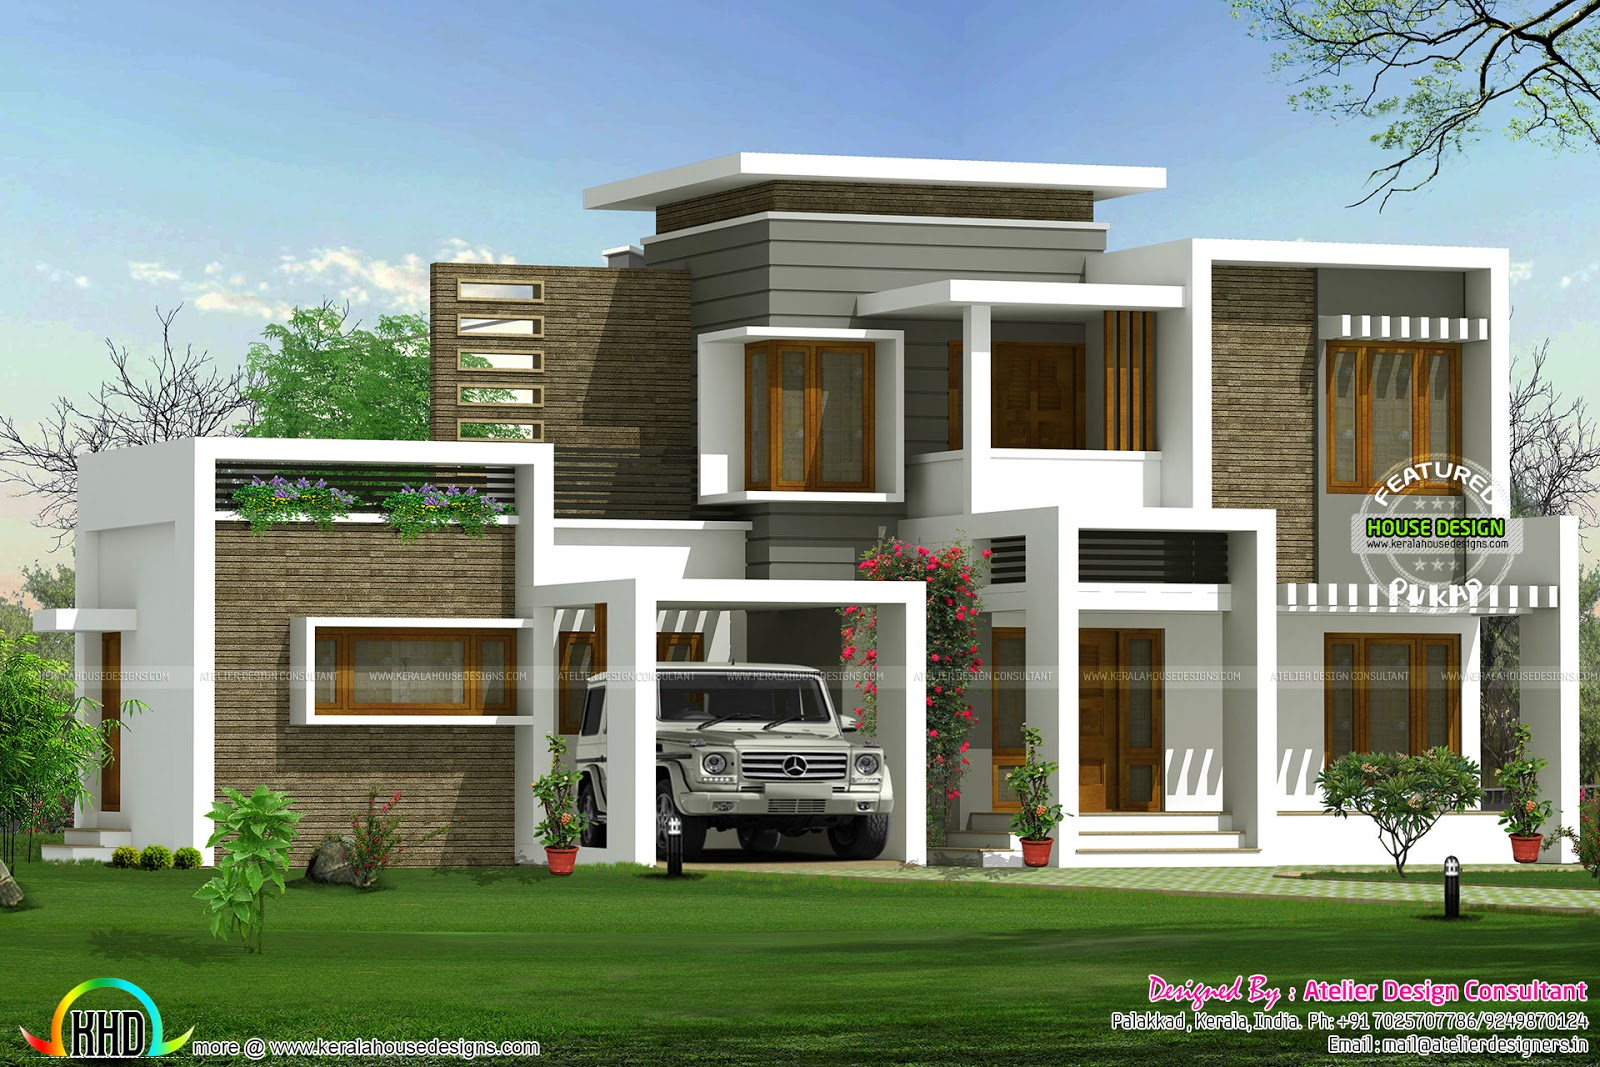 Fancy Beautiful Box Type Contemporary Home - Kerala Home Design And Floor within Kerala House Design With Floor Plans